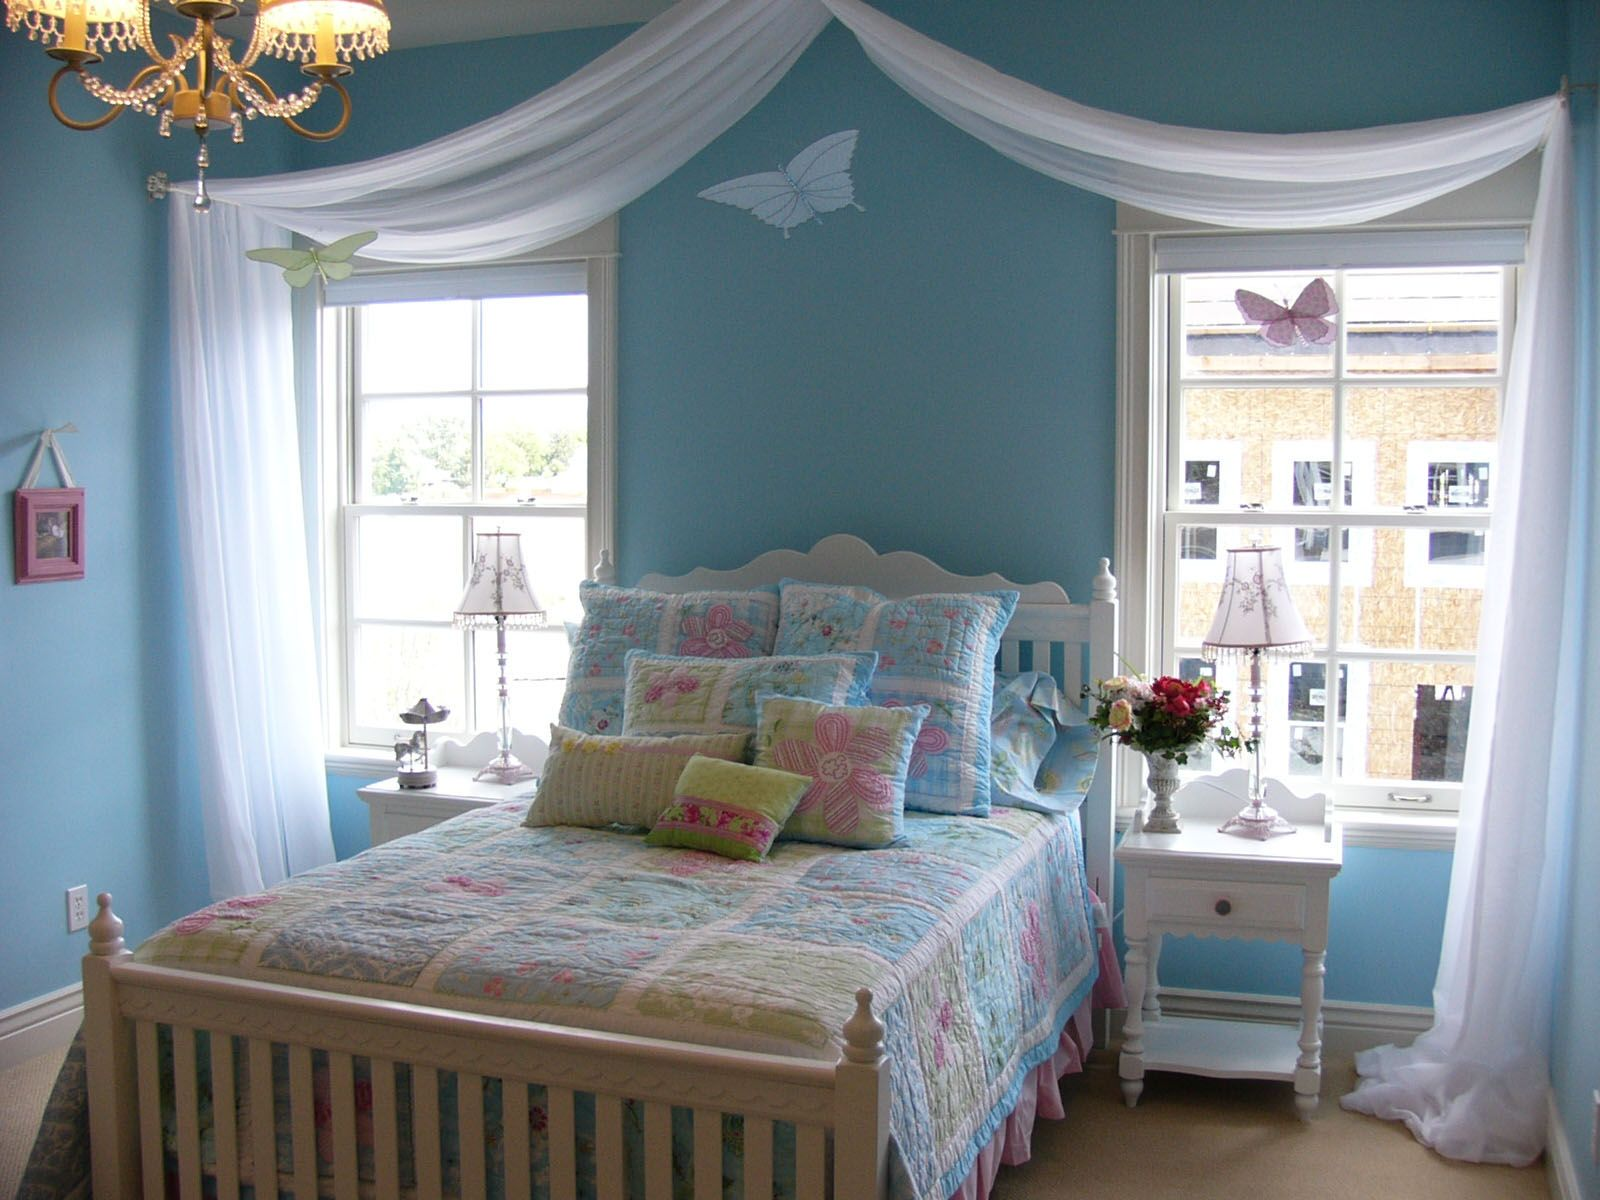 Ocean Bedroom Ideas  Httpwwwsumitroyco11667Oceanbedroom Impressive Curtains For Teenage Girl Bedroom Decorating Inspiration